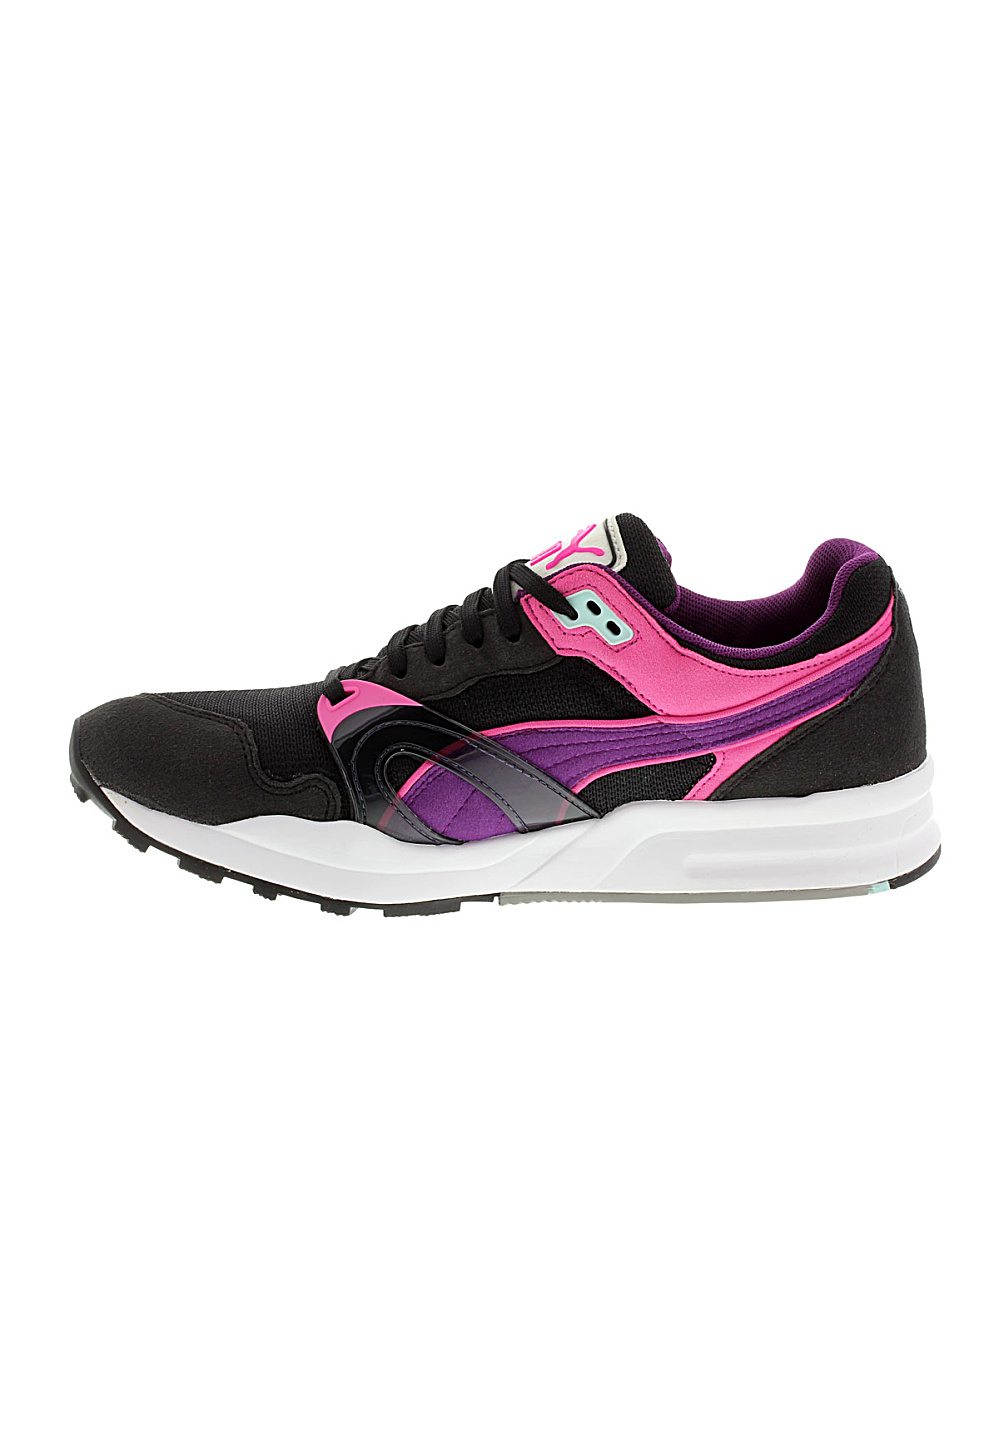 ... Puma Trinomic XT1 Plus Jr - Sneakers - Multicolor. Previous